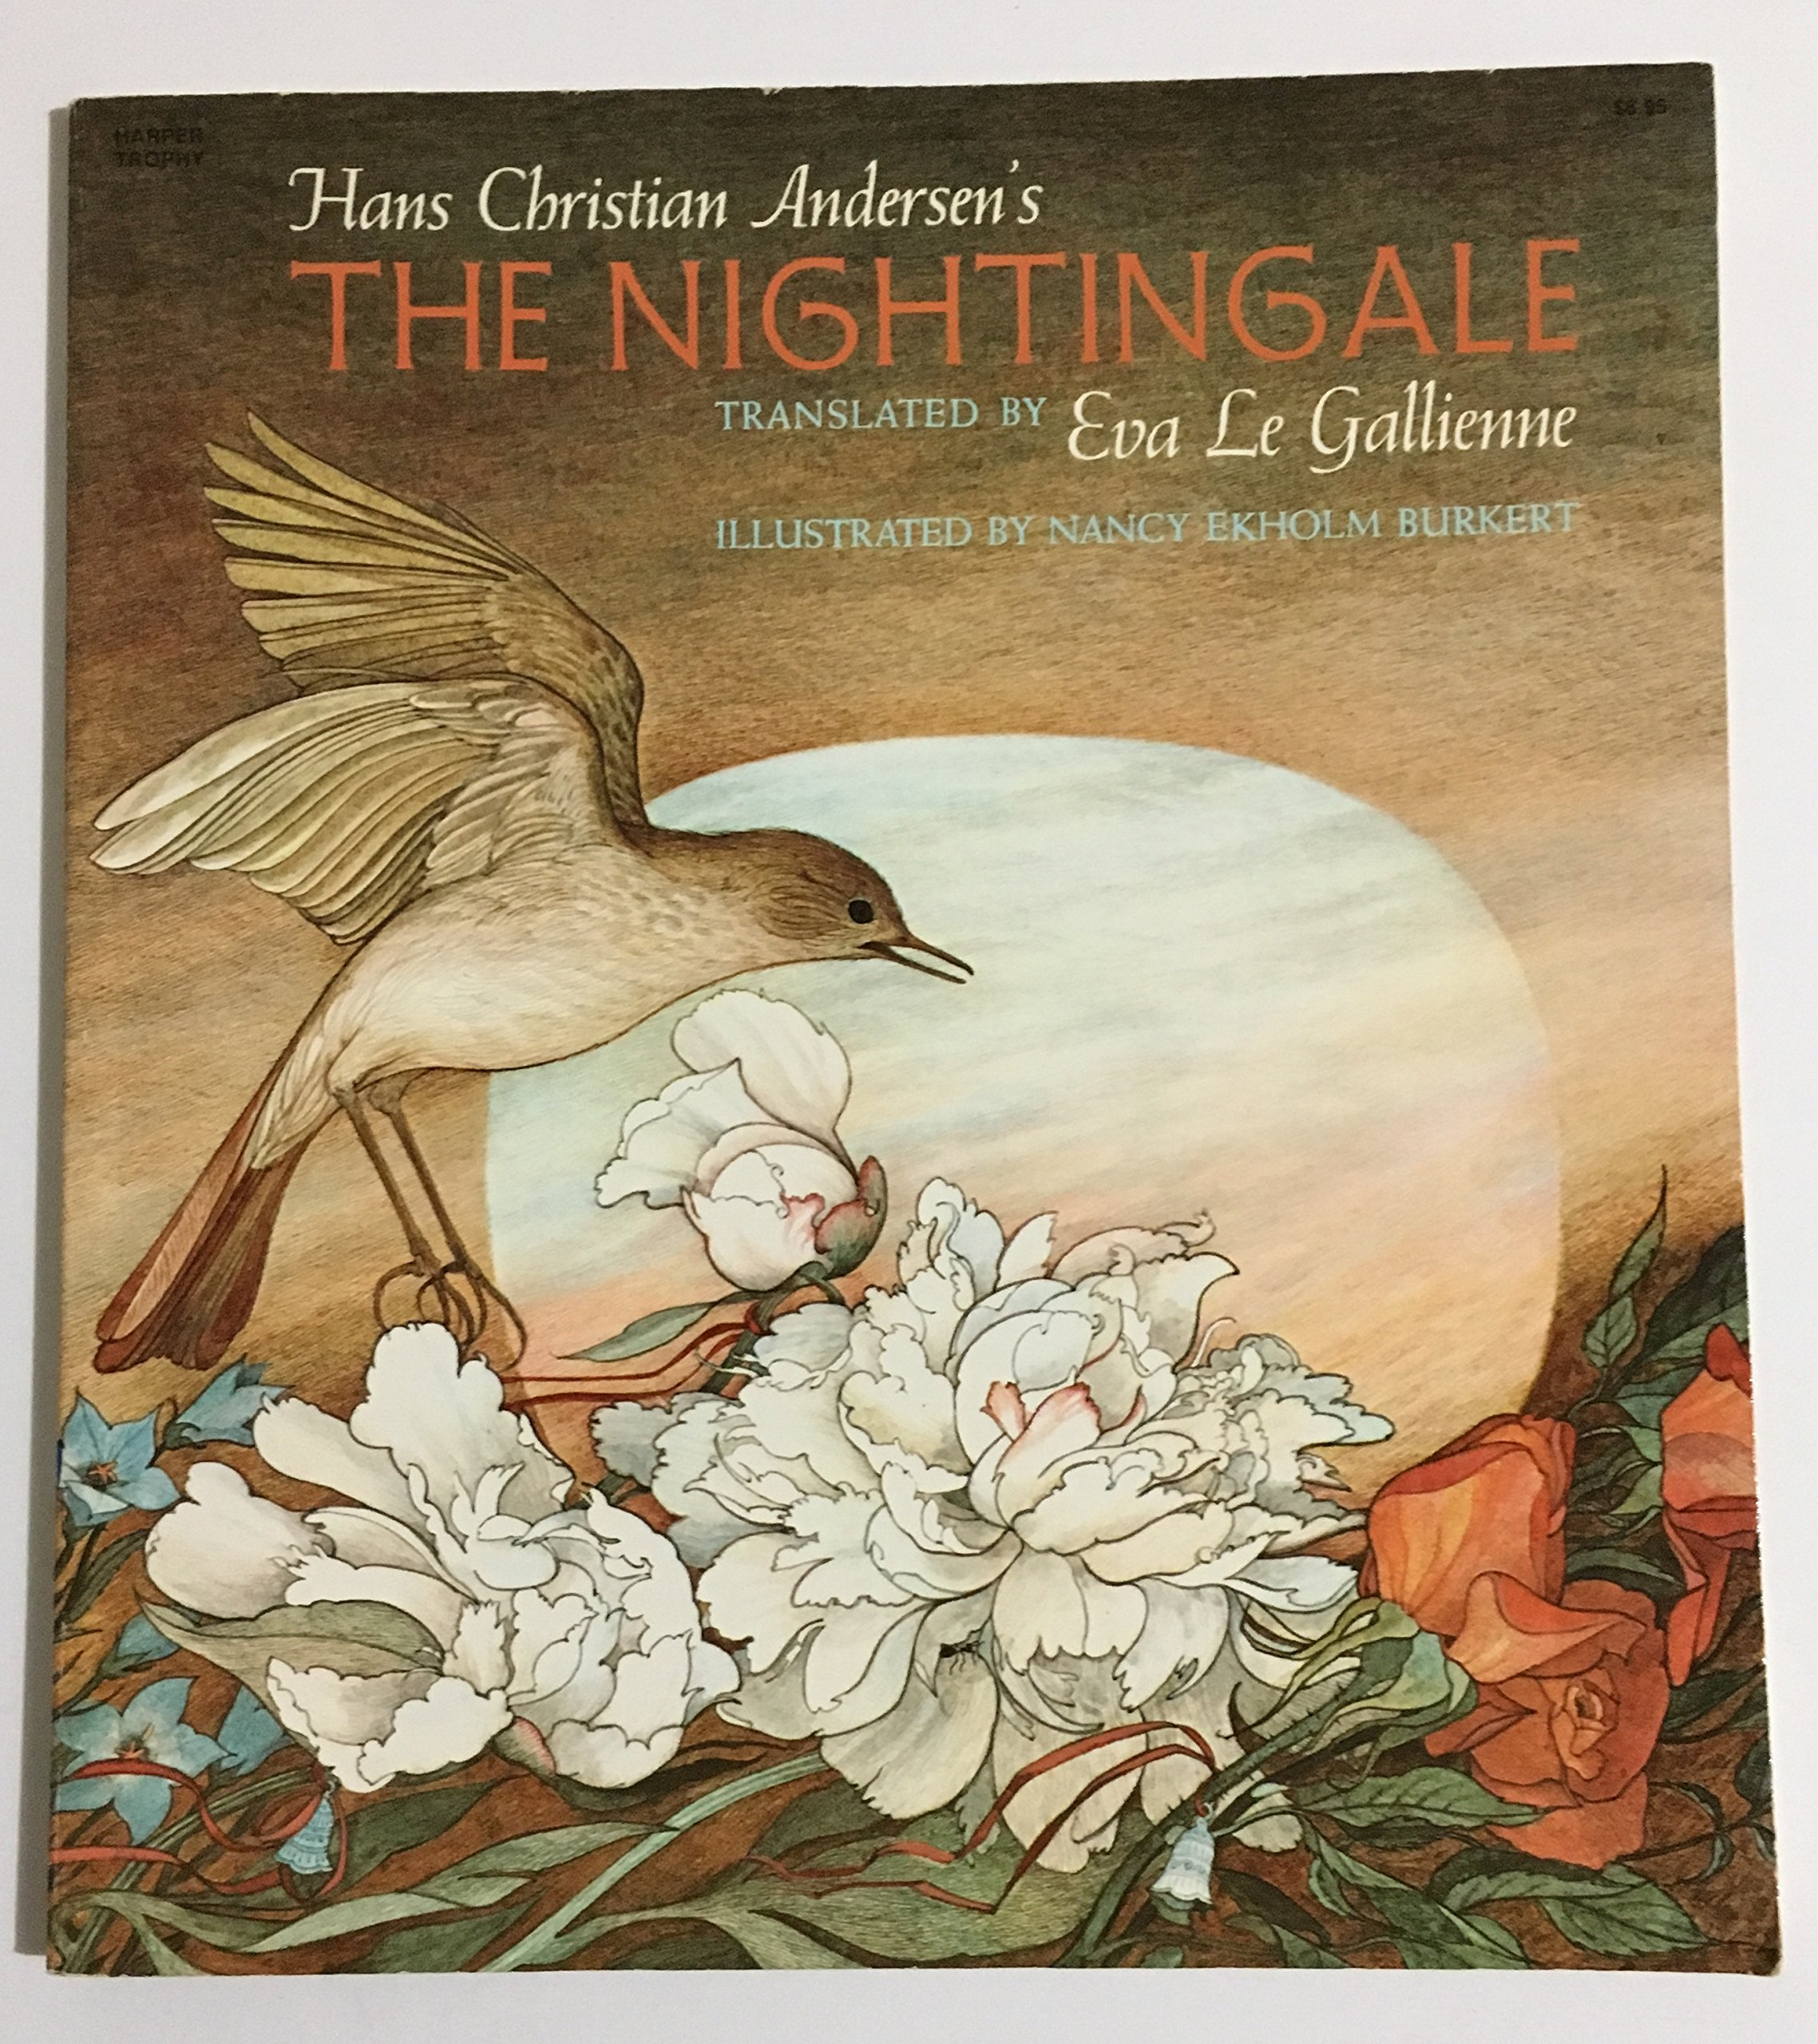 The Nightingale (The Illustrated Hans Christian Andersen Book 2)